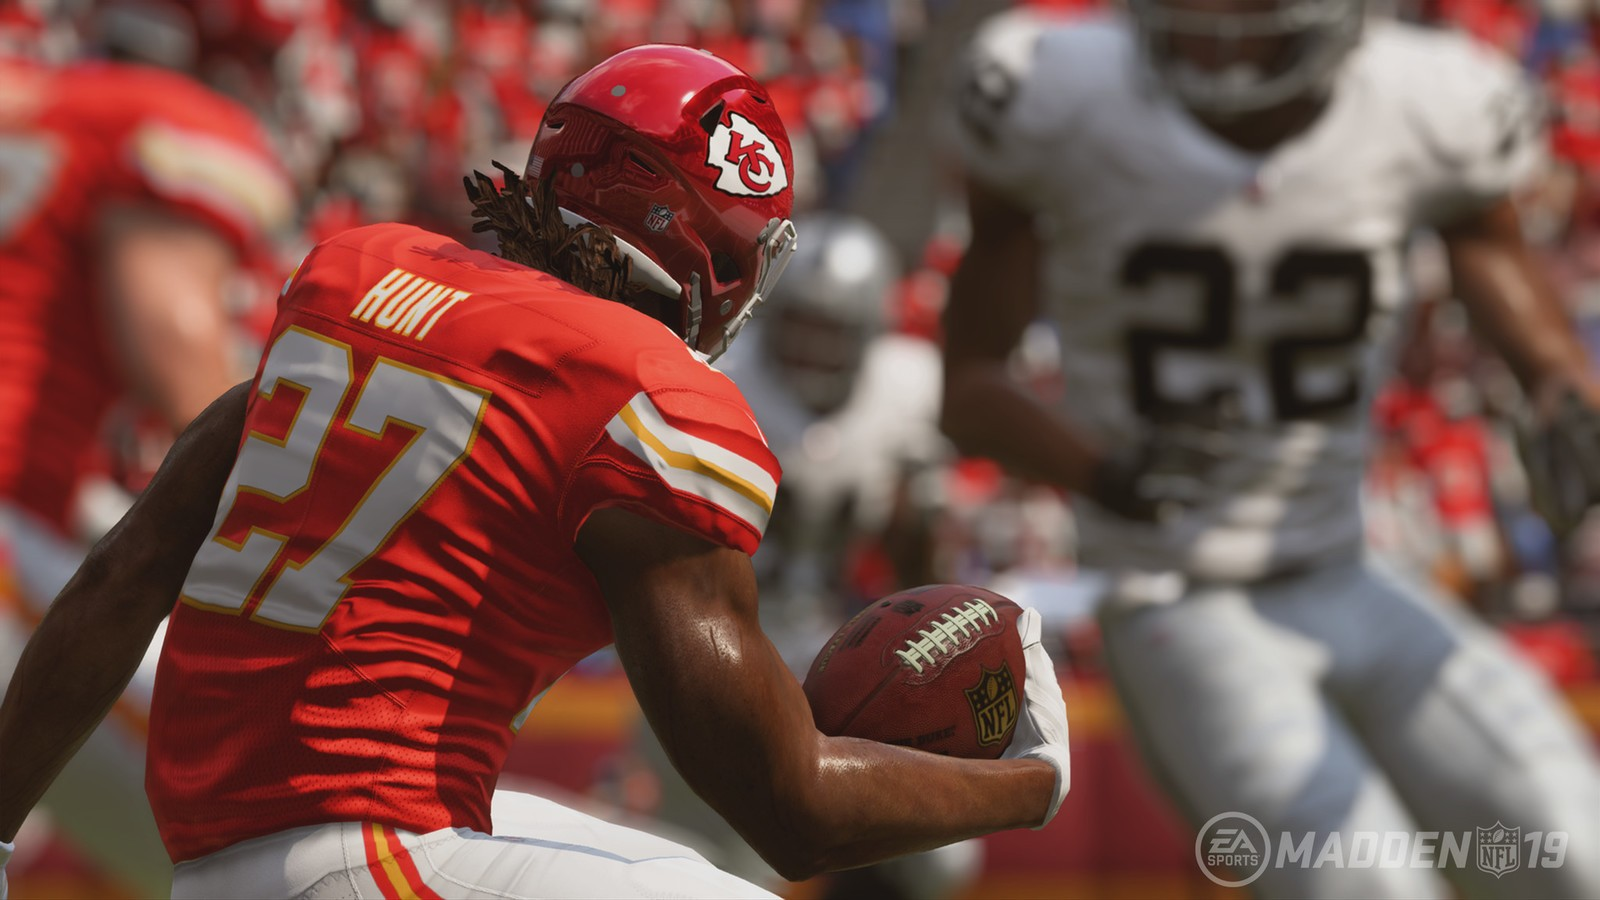 Madden NFL 19 Wiki – Everything You Need To Know About The Game